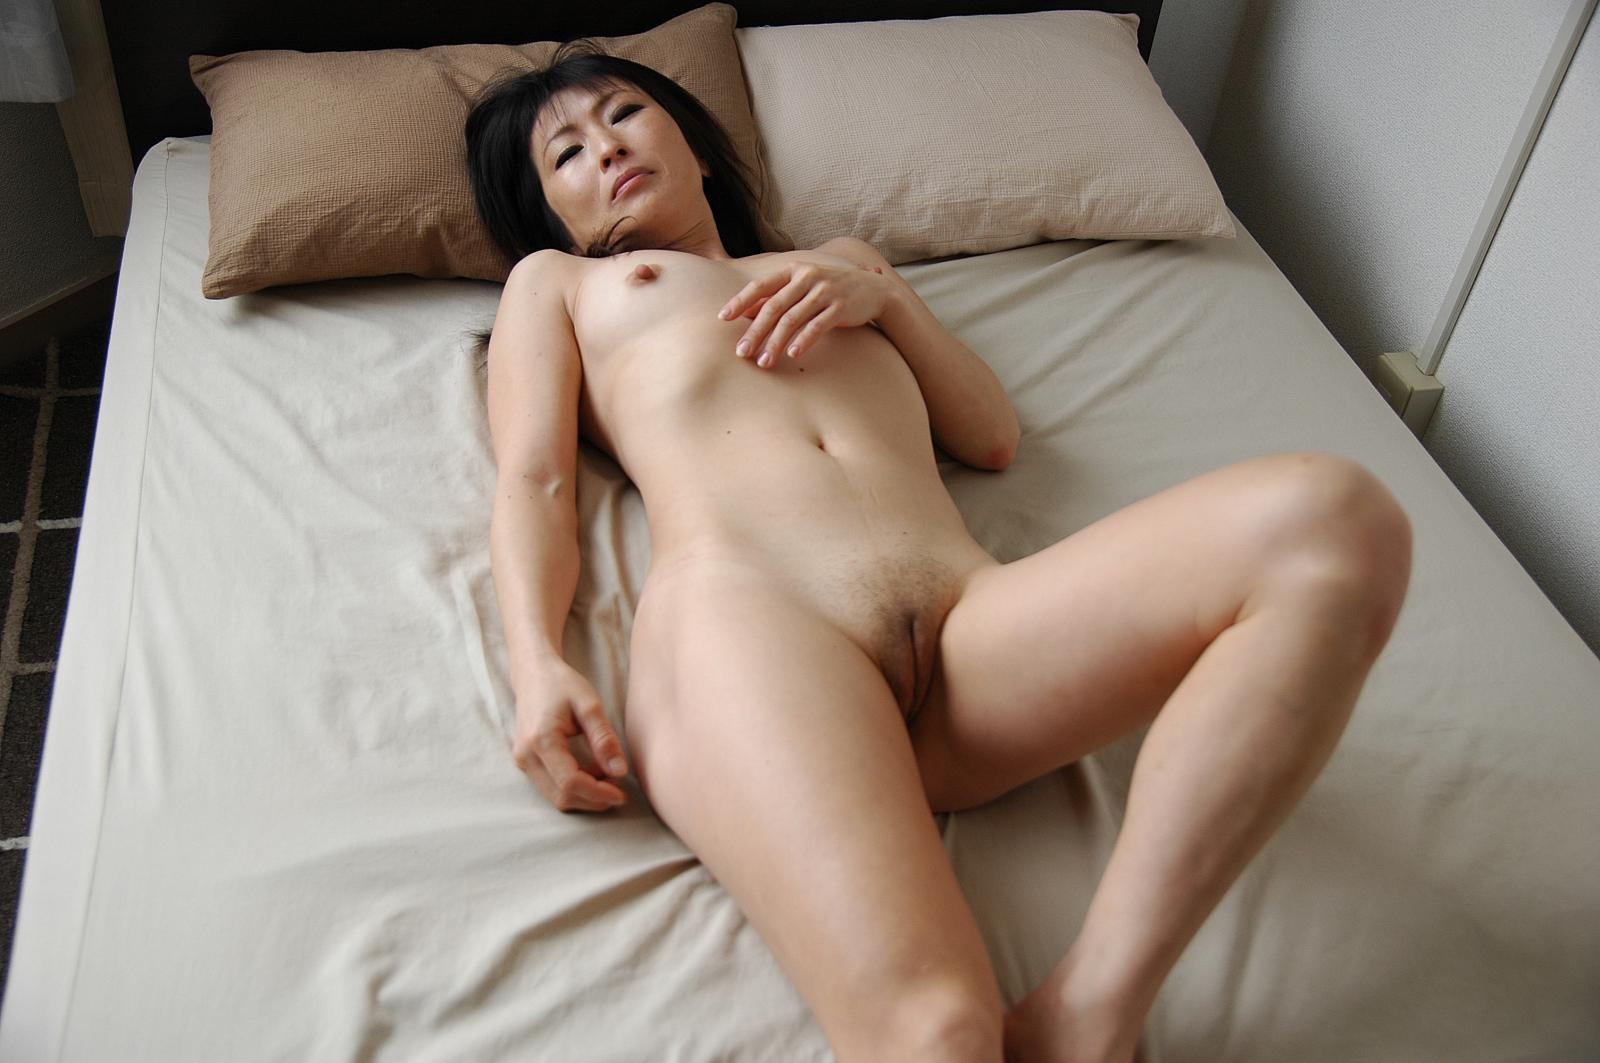 fucked mom new Asian hot picture naked